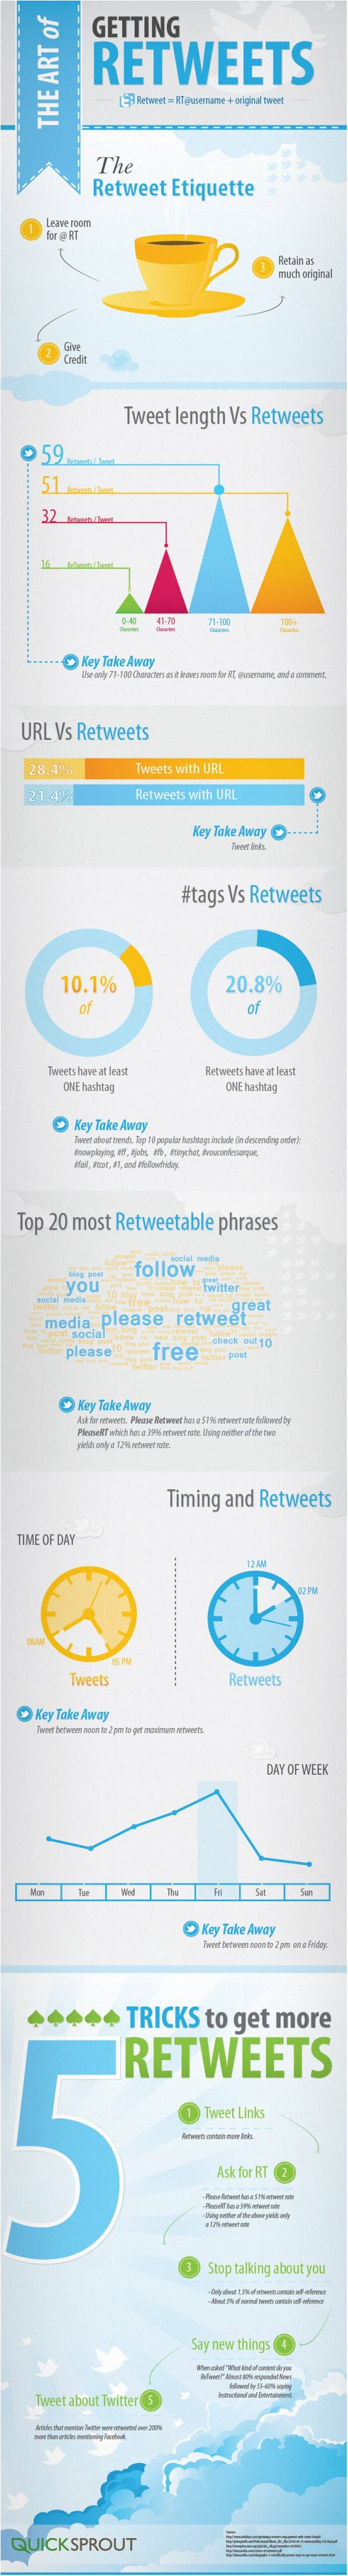 Infographic: How to get more retweets